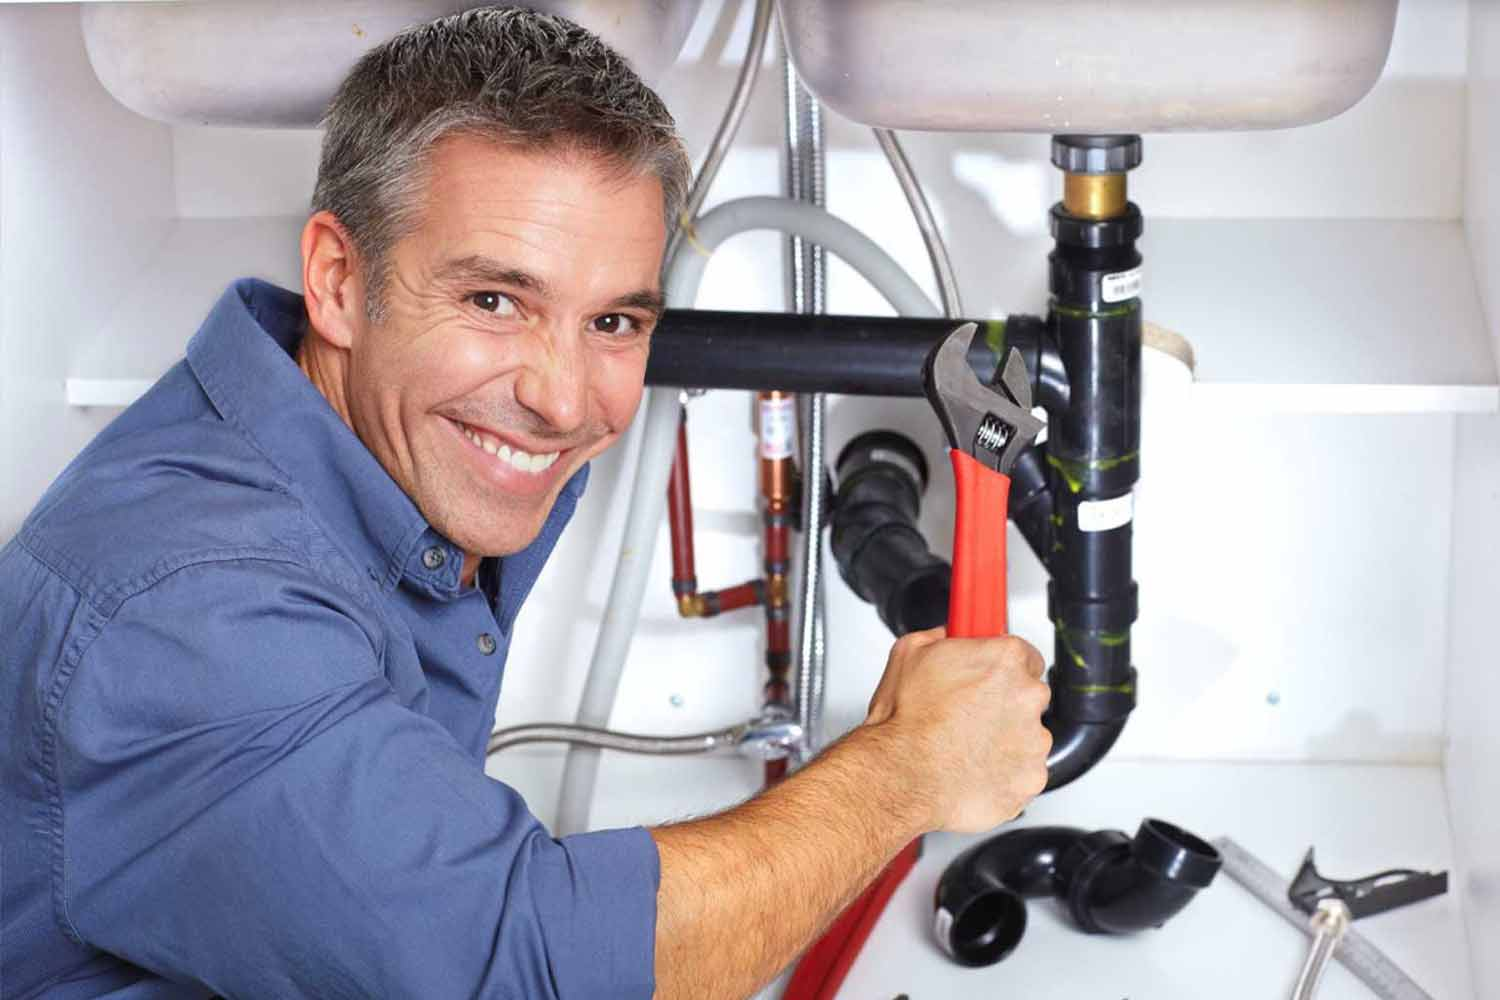 plumber-holding-wrench